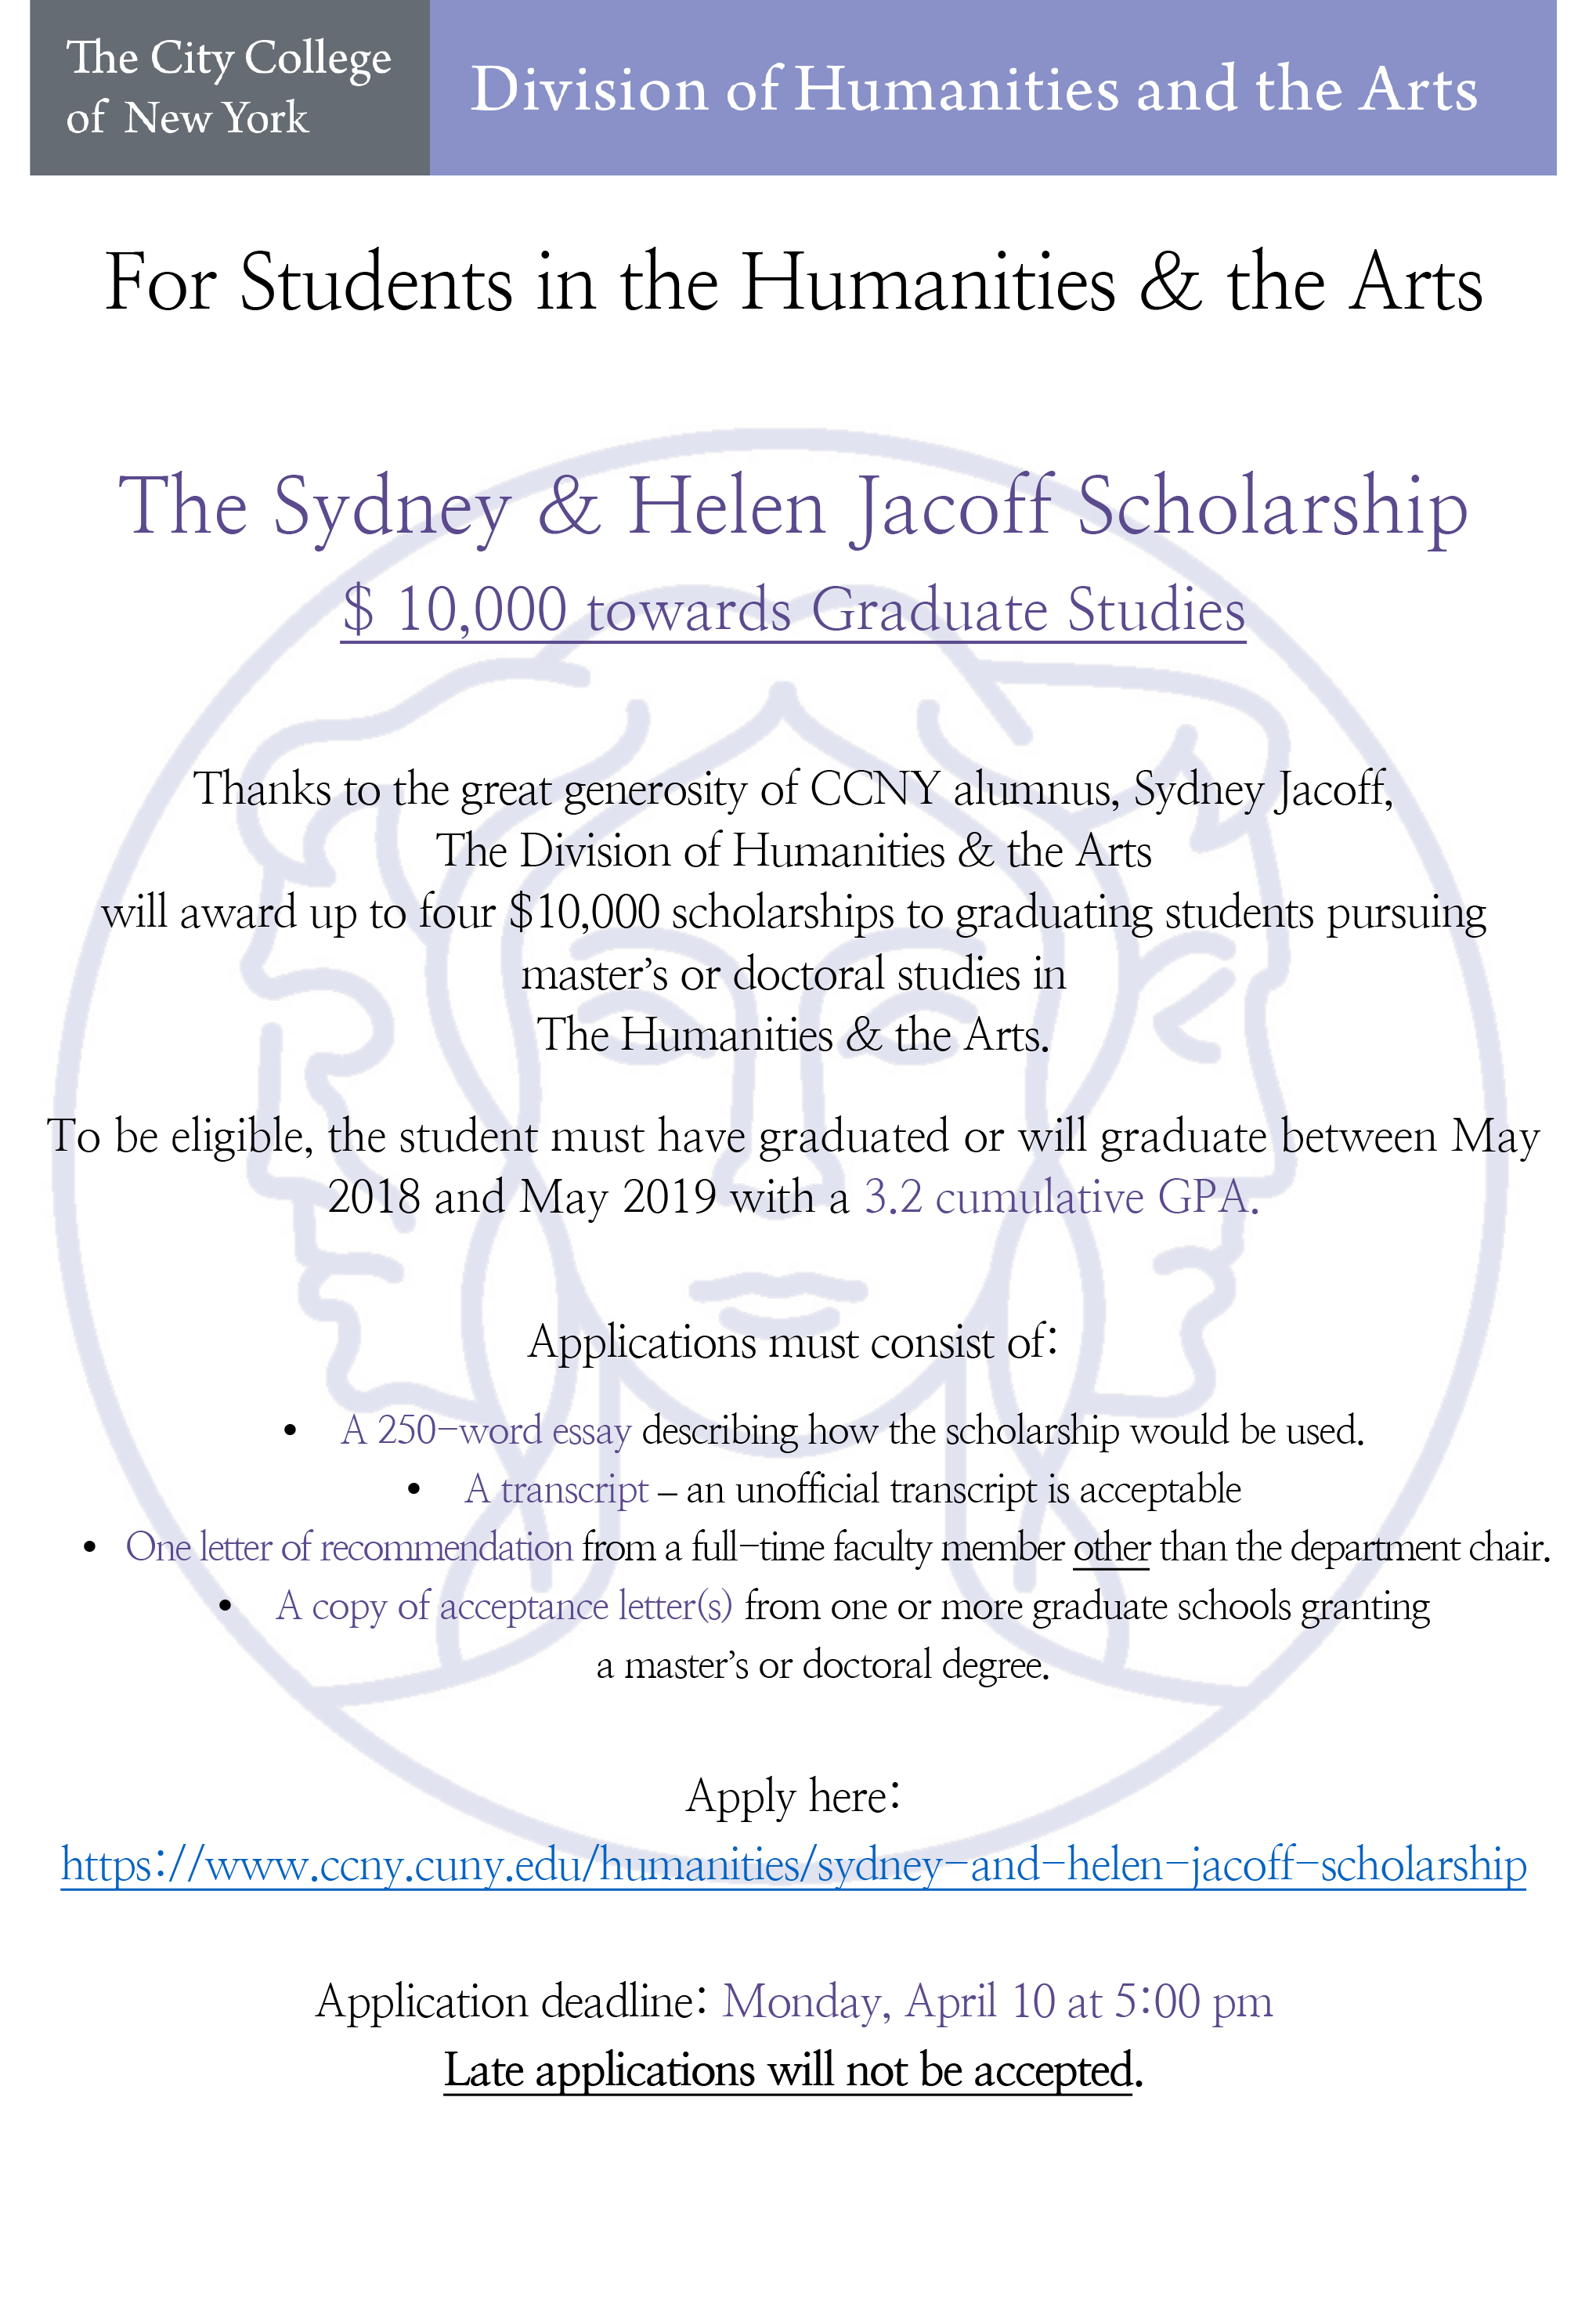 Jacoff Scholarship 2019 Announcement